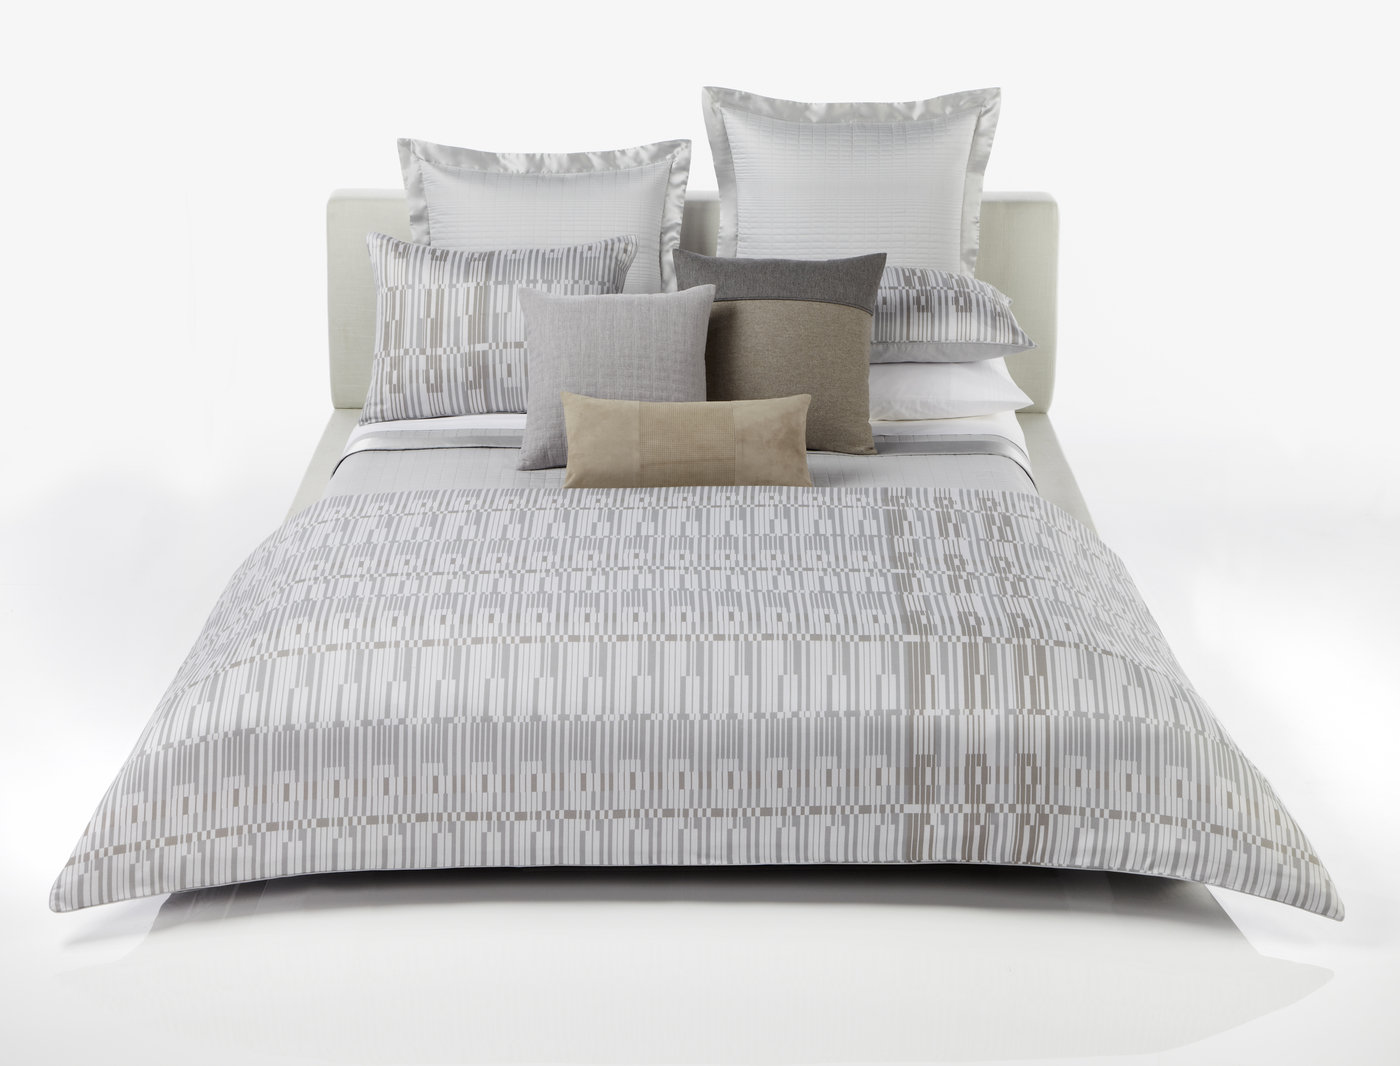 Hugo Boss Home Bedding By Emma Estrada At Coroflot Com